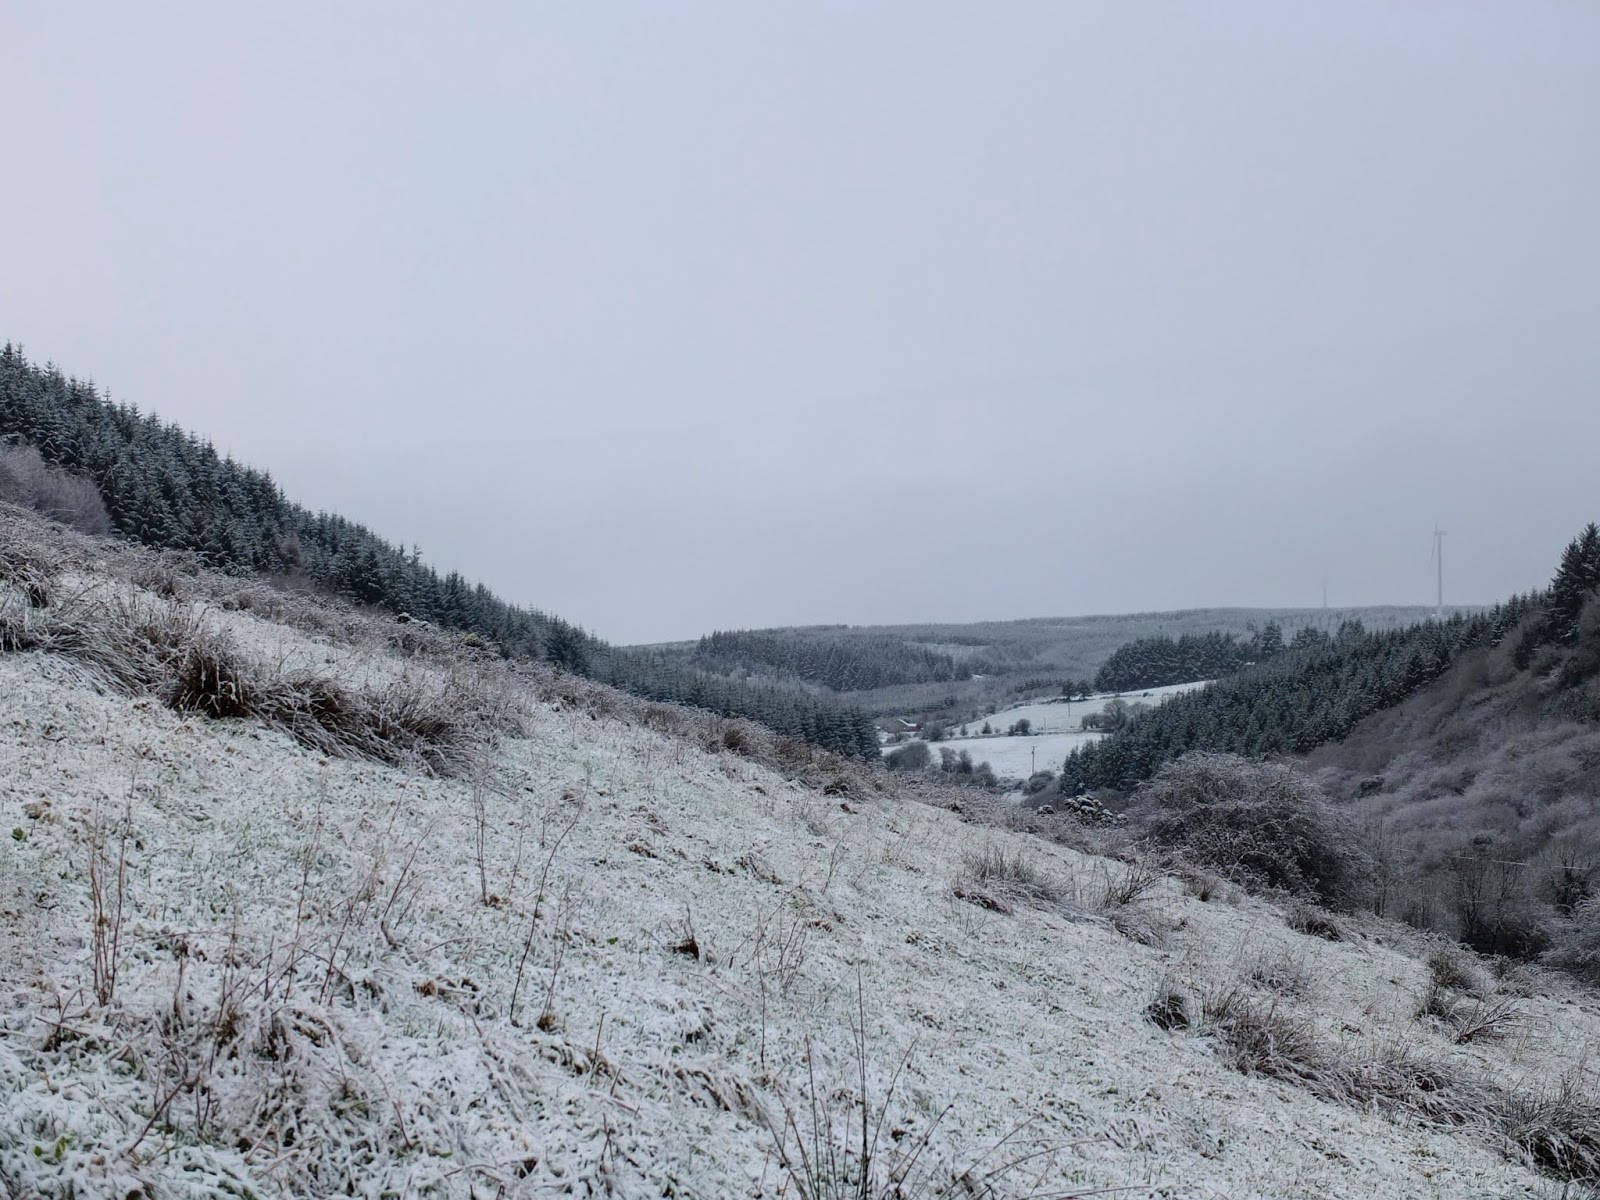 Mountain side landscape of North Cork captured on a snowy day.